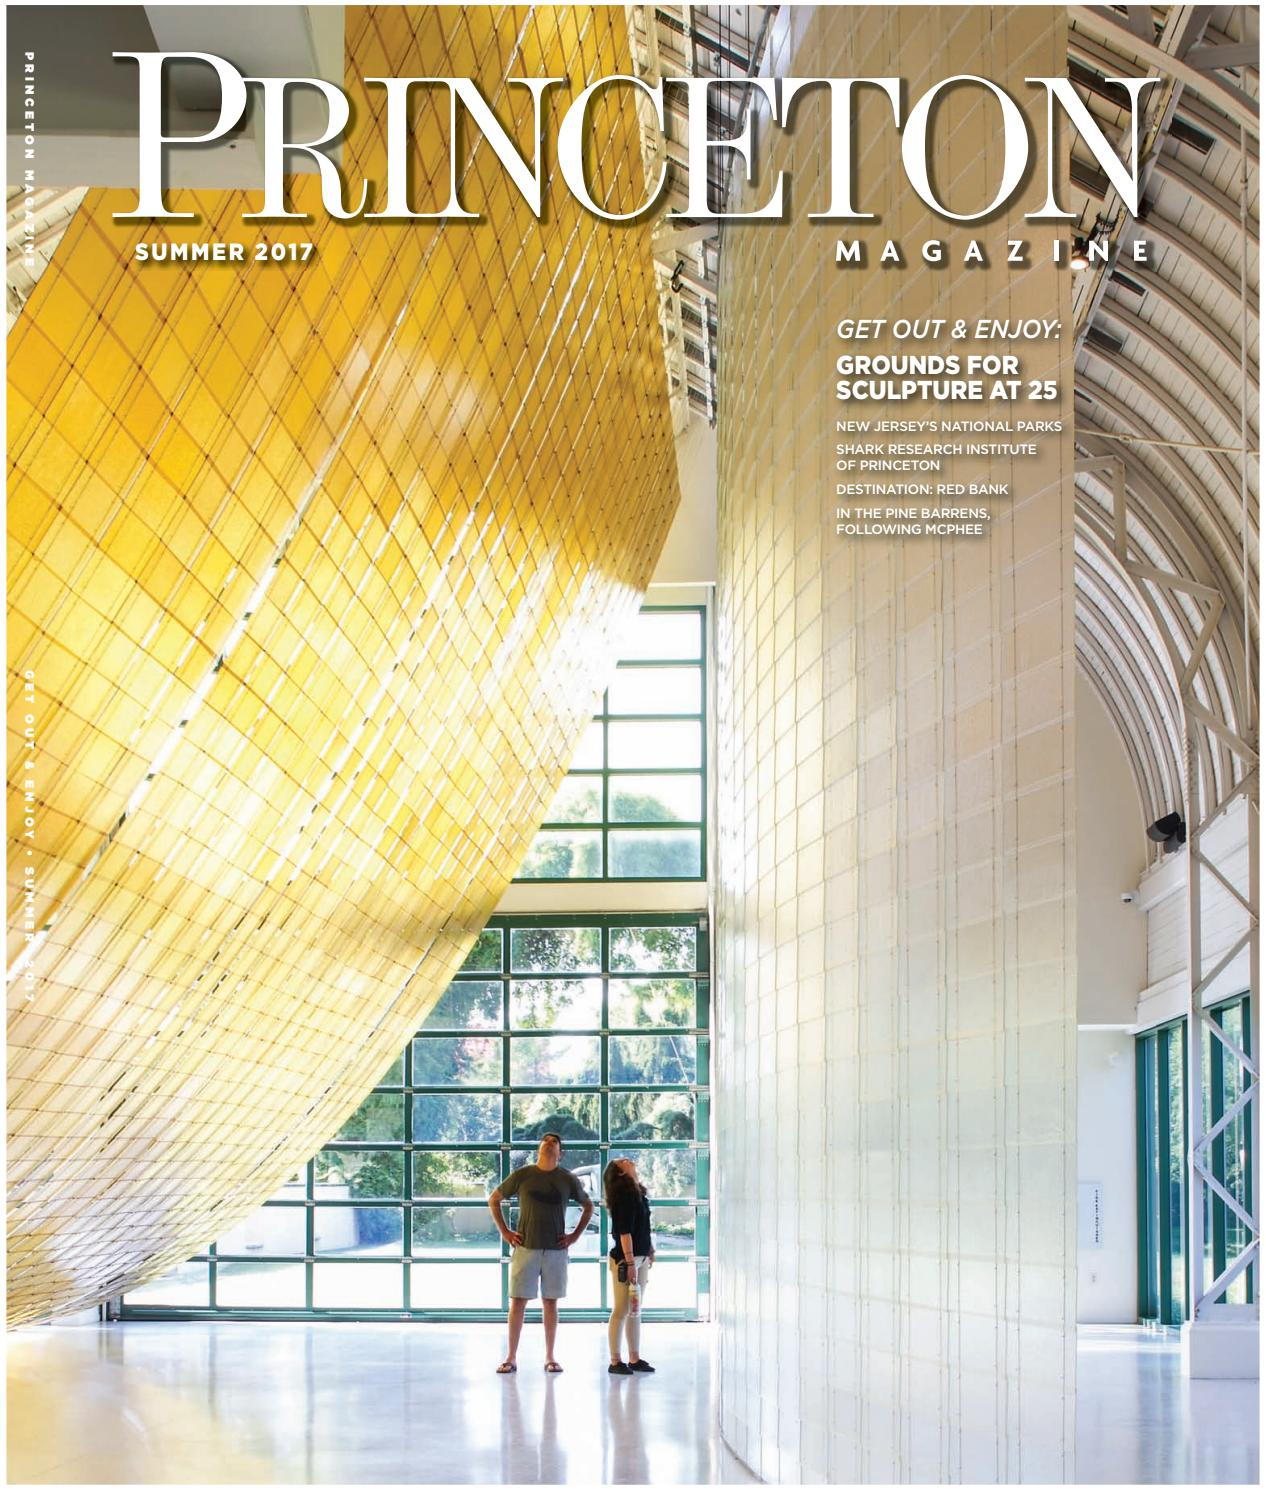 Princeton Magazine, Summer 2017 by Witherspoon Media Group - issuu